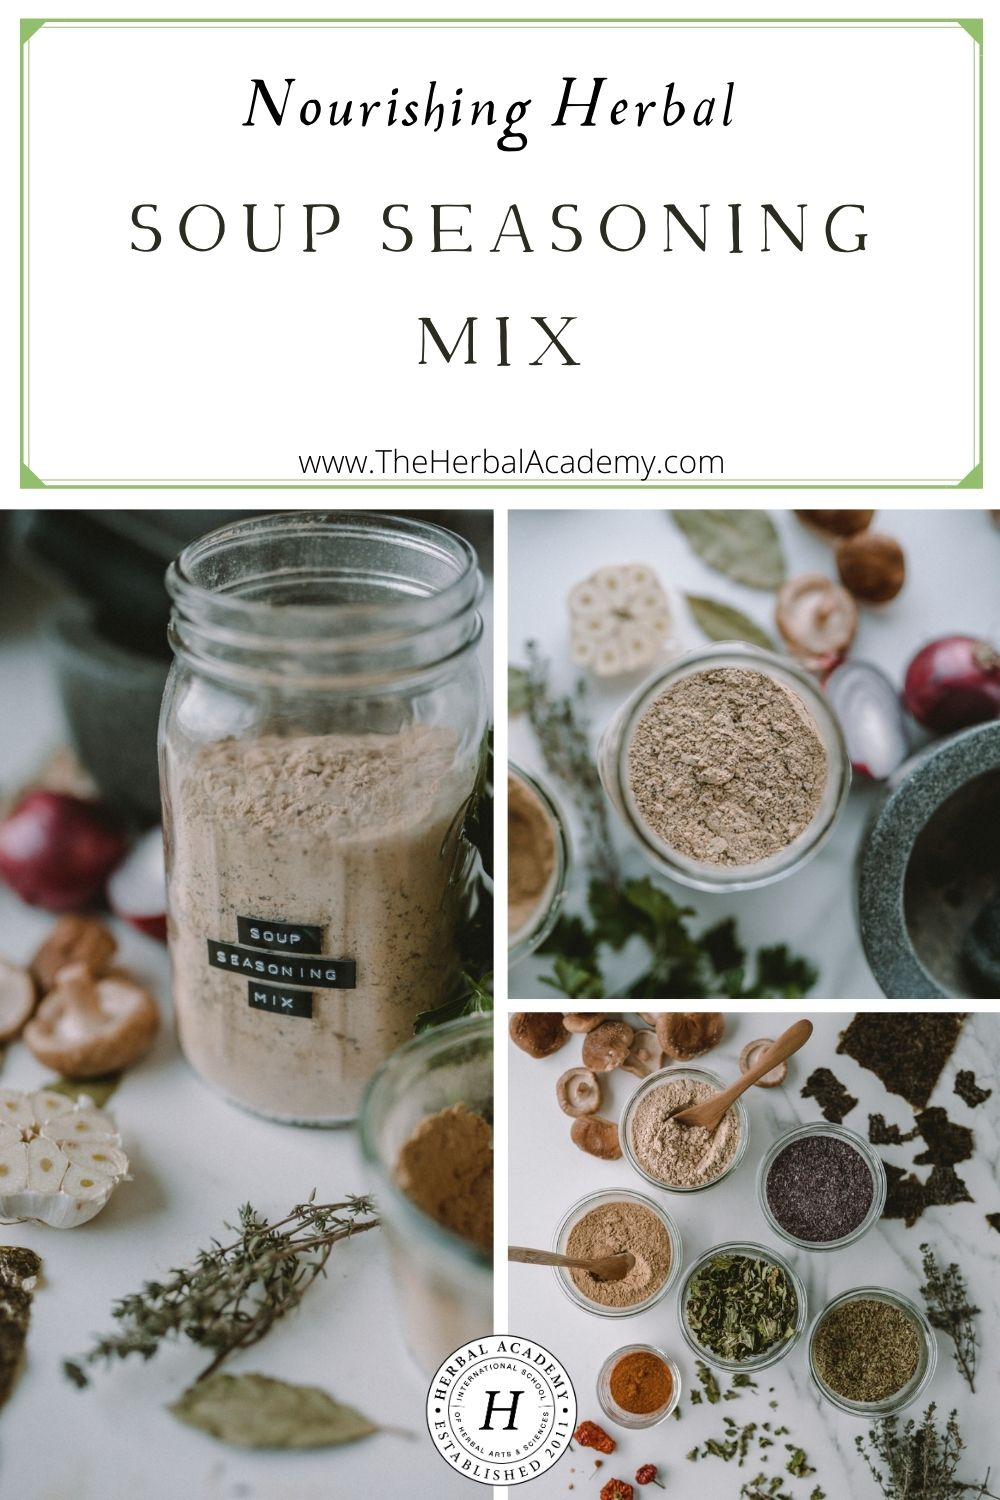 Nourishing Herbal Soup Seasoning Mix | Herbal Academy | These days, it is important to build a strong immune system. This herbal soup seasoning mix is one nourishing way to do that!